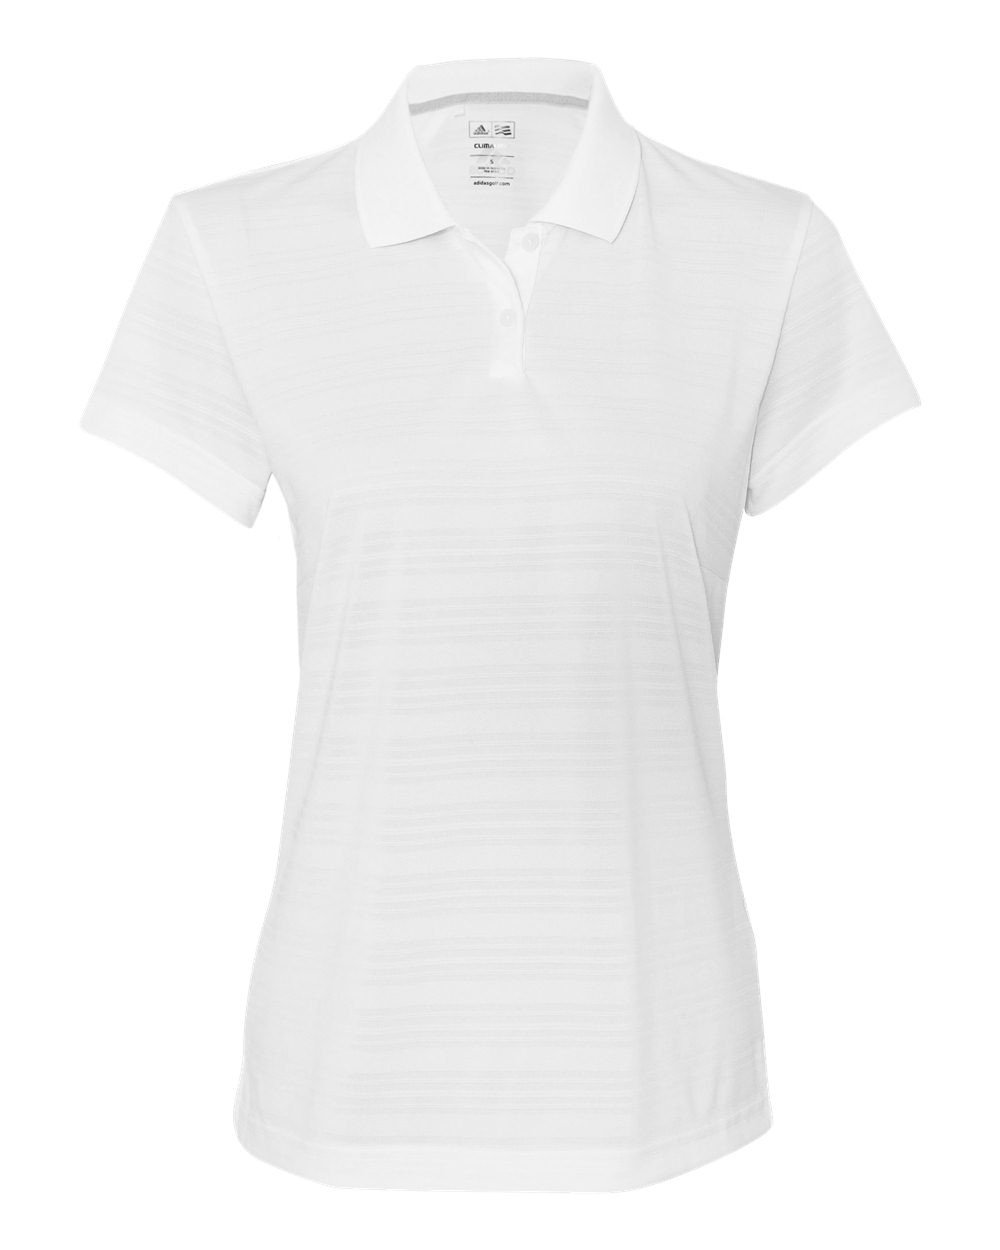 adidas Golf Womens Climalite Textured Short-Sleeve Polo (A162) -White -M